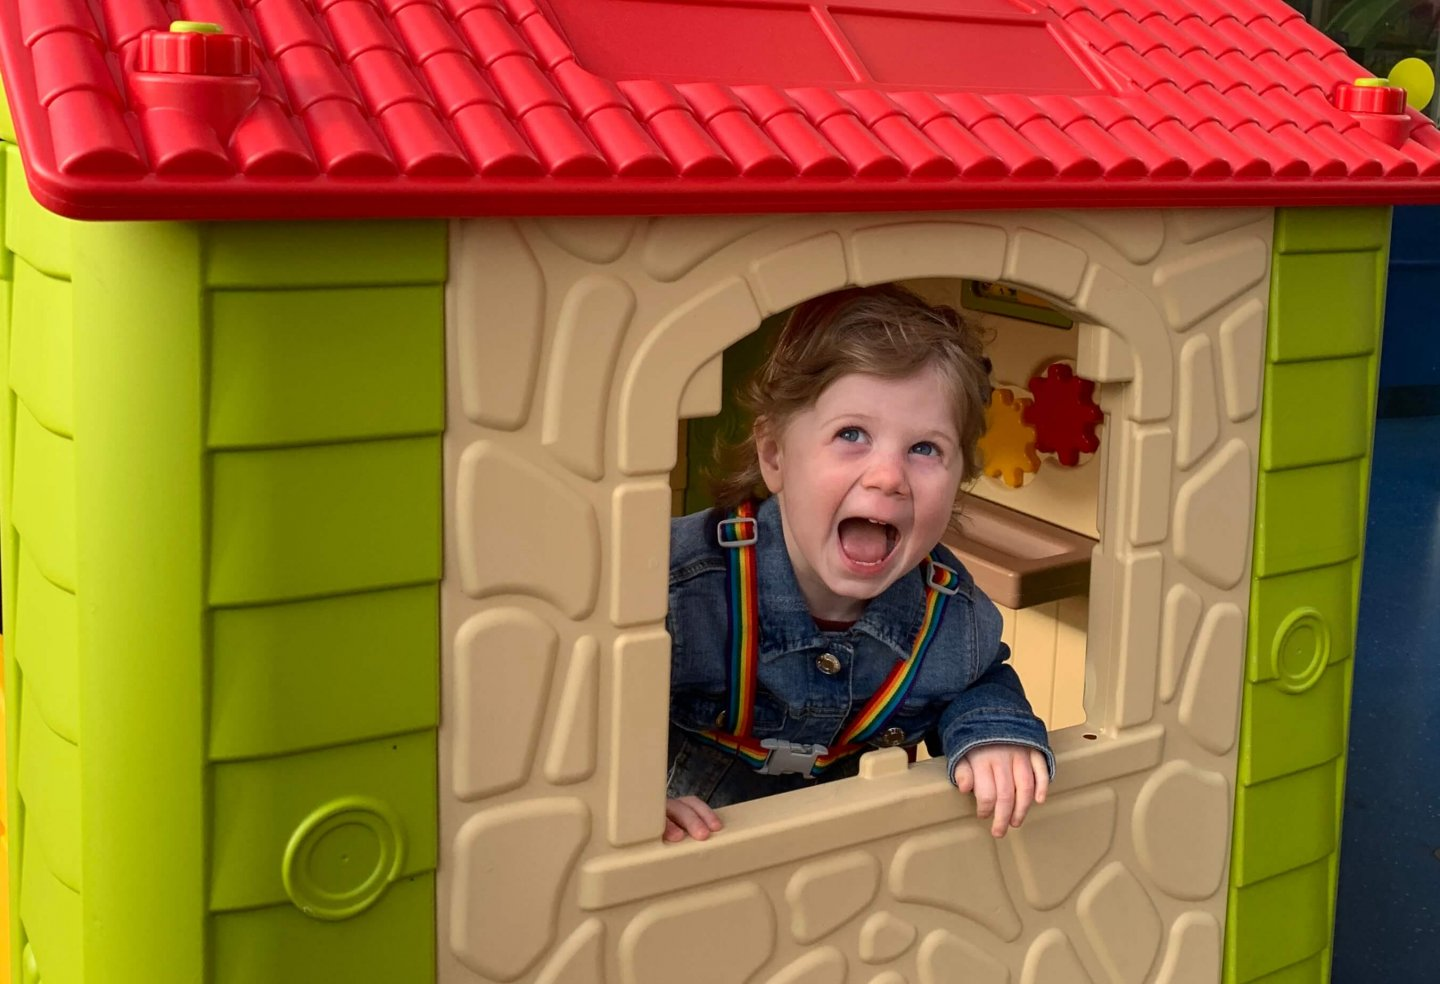 M grinning through the window of a play house.